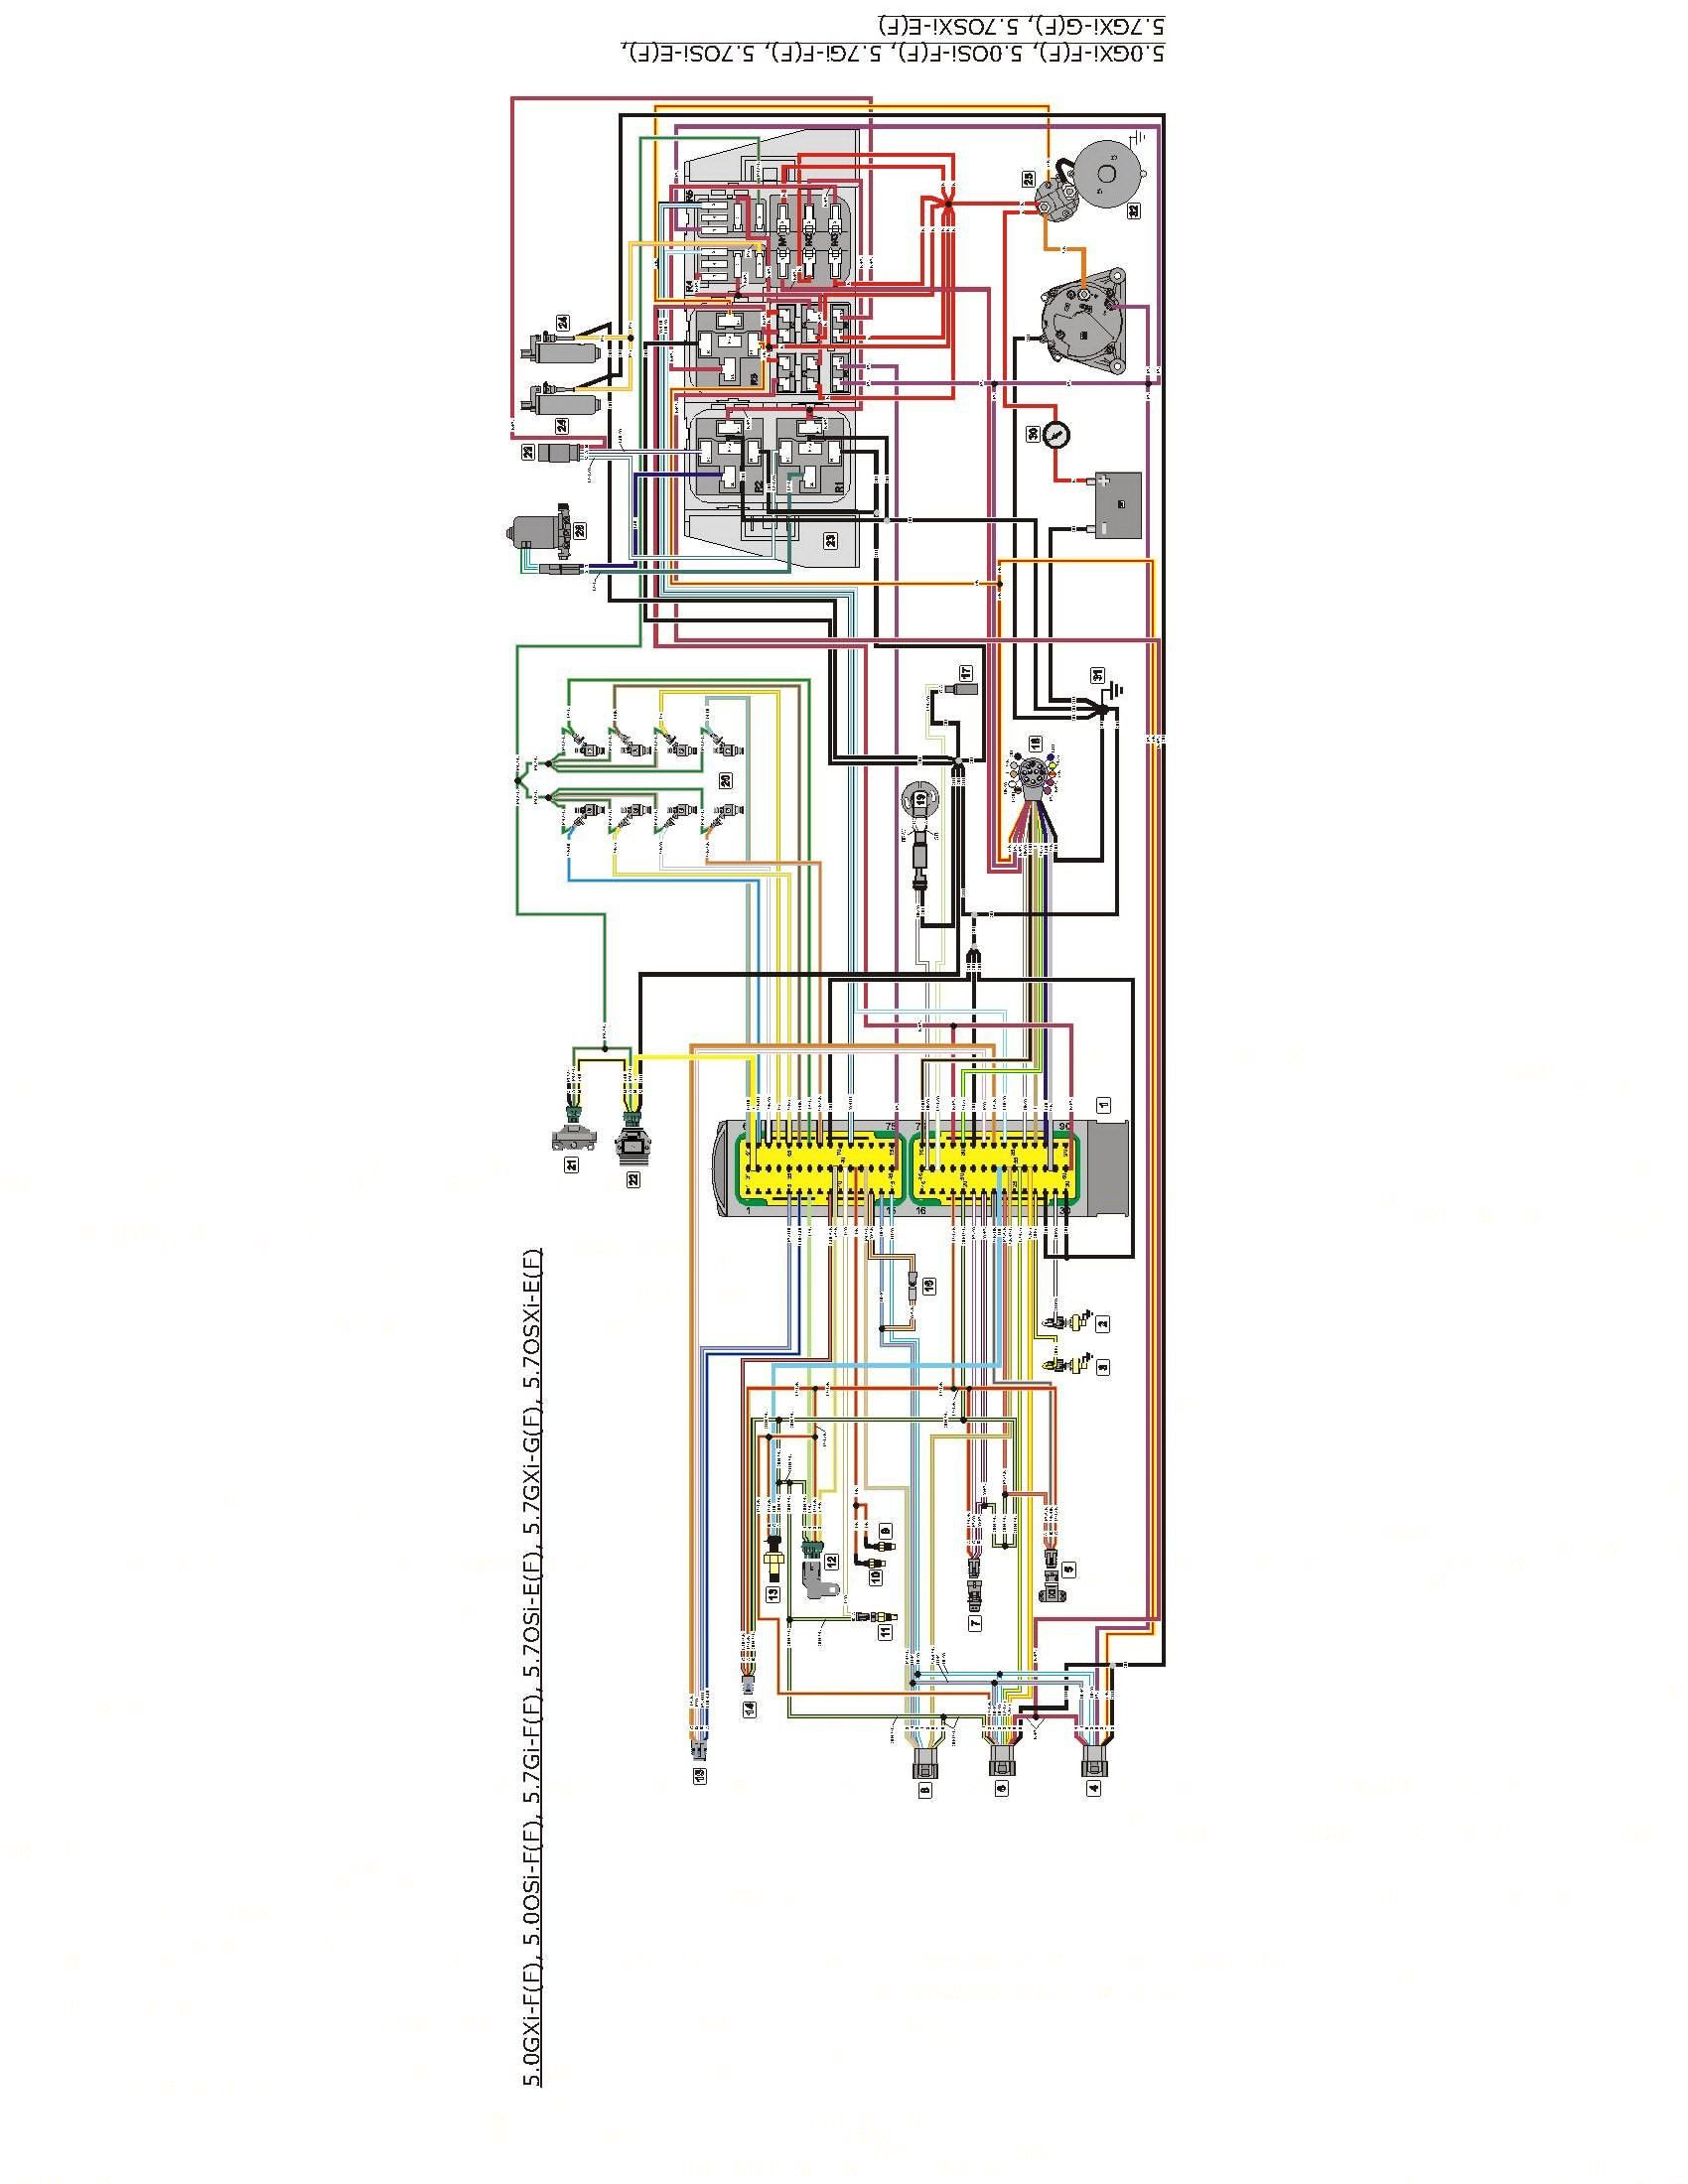 Volvo Penta Wiring Schematics Diagram Data Mercury Outboard Starter Power Trim Lovely For 1996